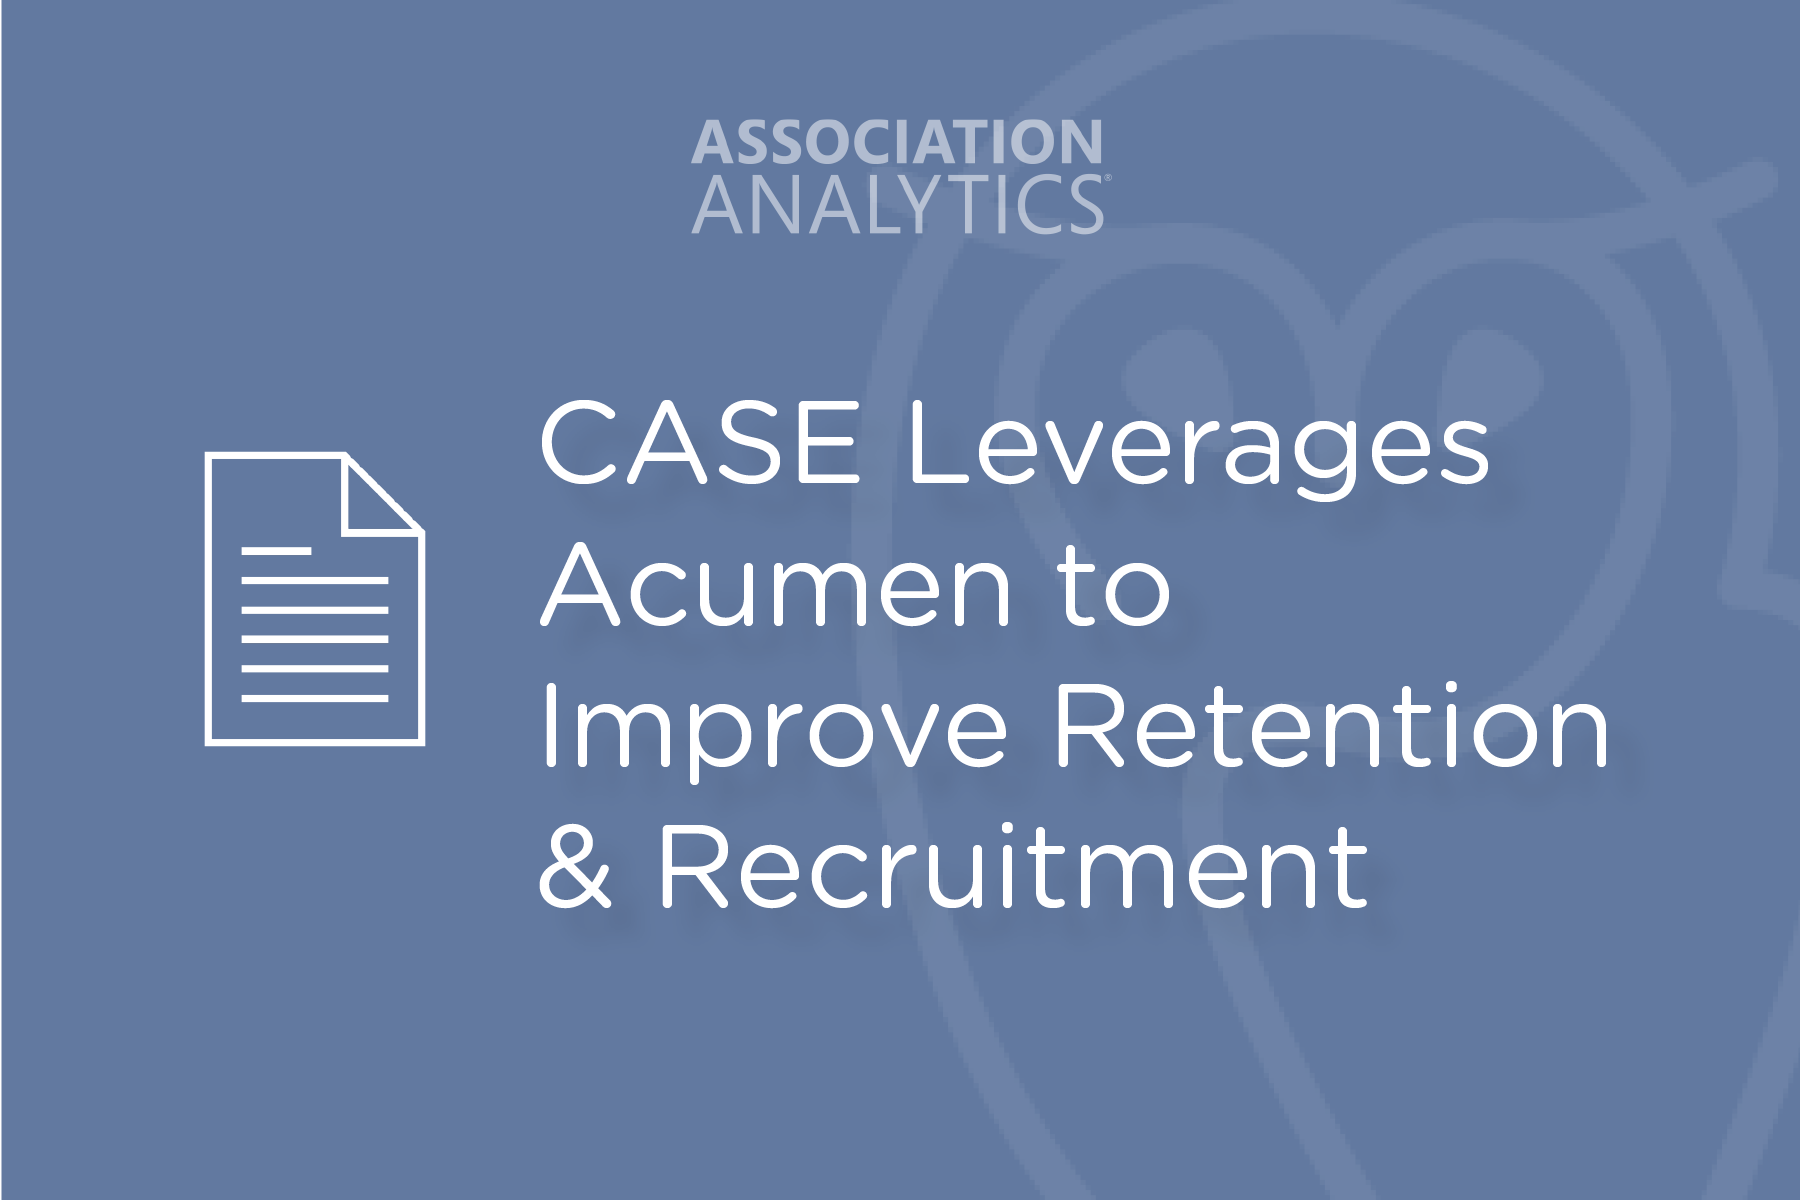 CASE Leverages Acumen to Identify Opportunities to Improve Retention and Recruitment